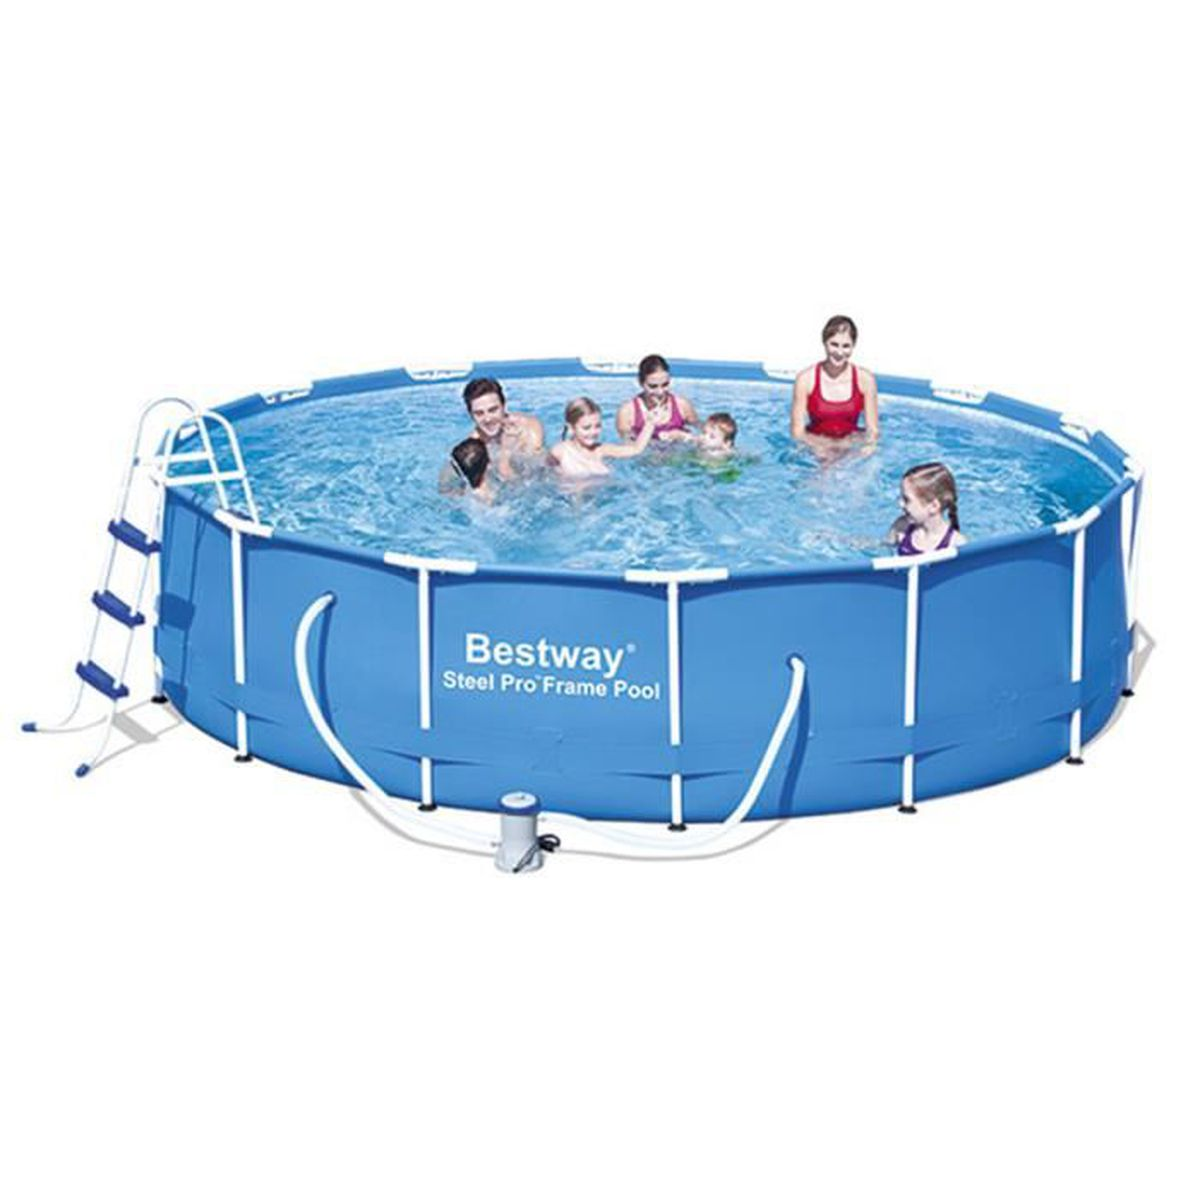 Piscine tubulaire amovible bestway steel pro 427x100 cm for Piscine tubulaire bestway